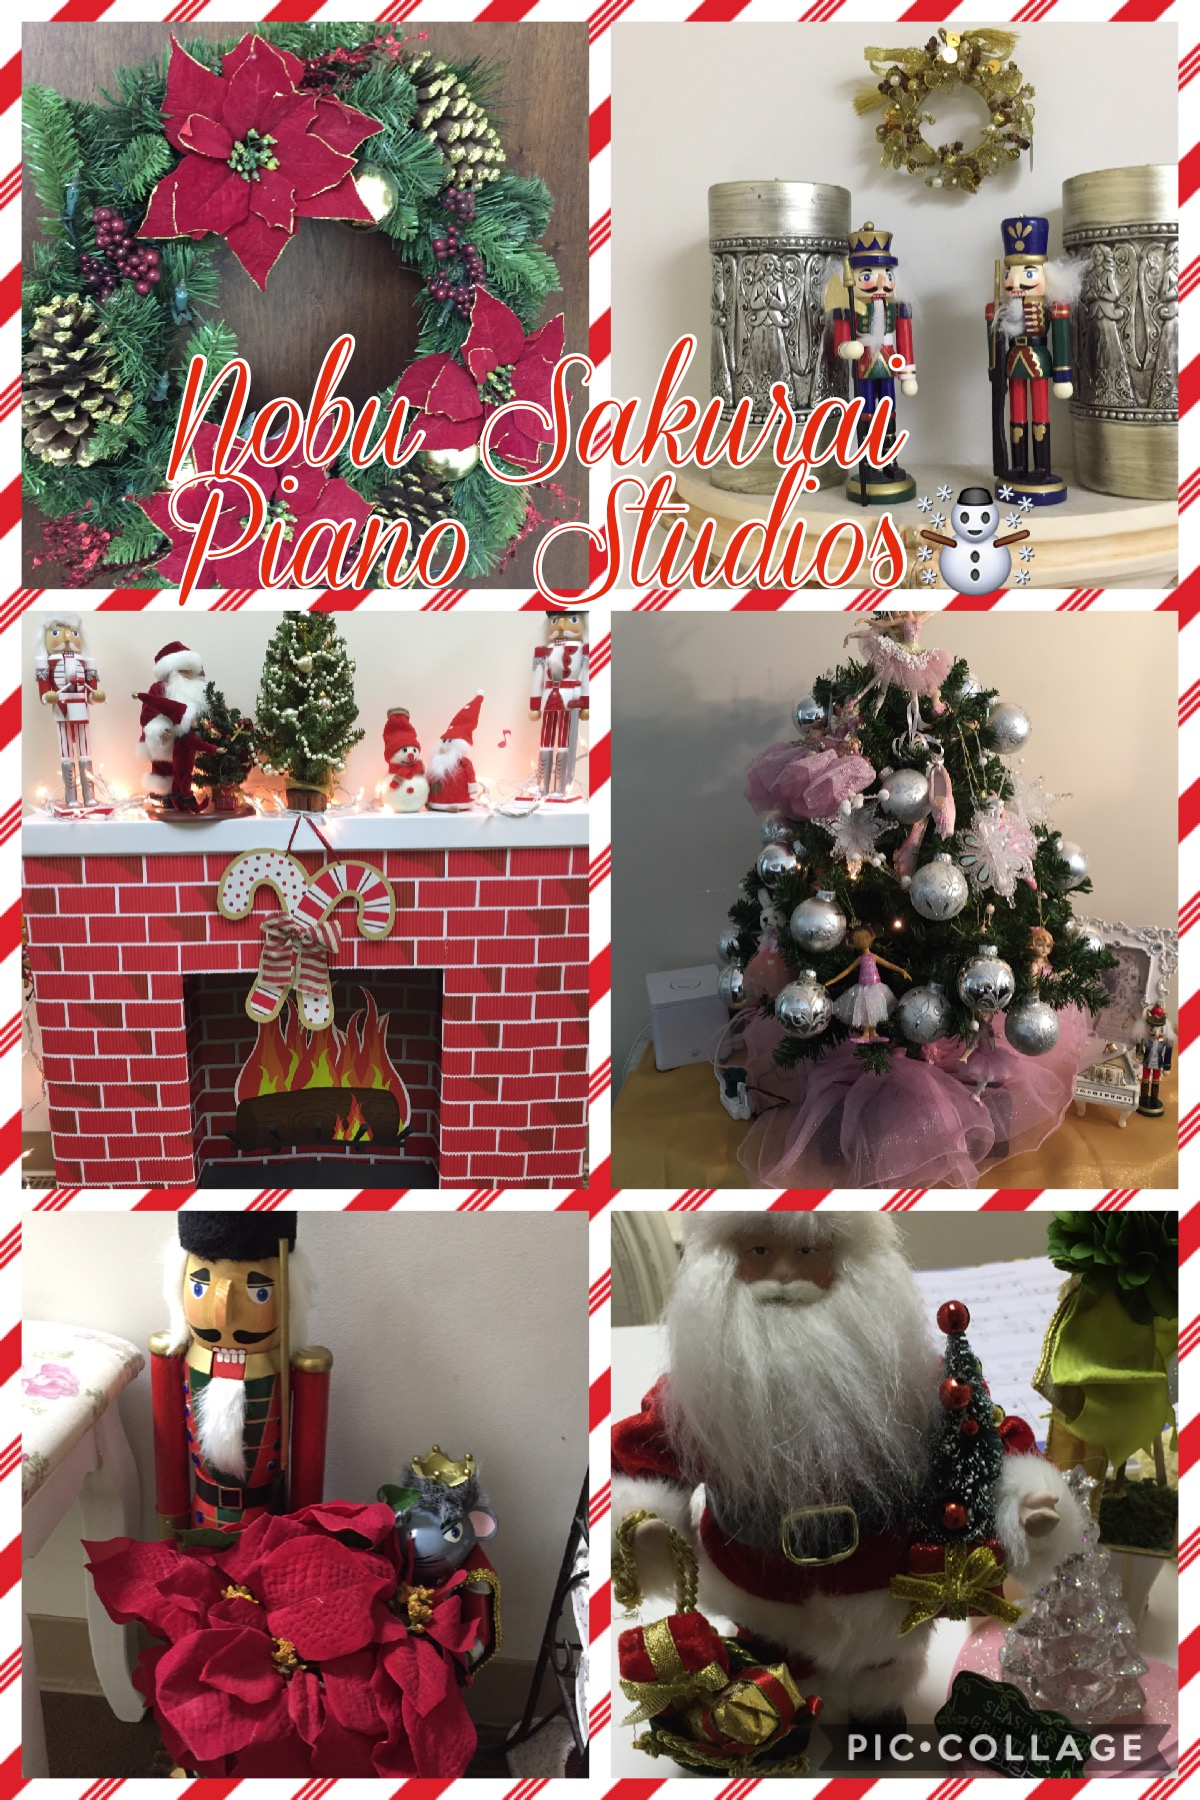 Beautiful Christmas Decorations at our studio!